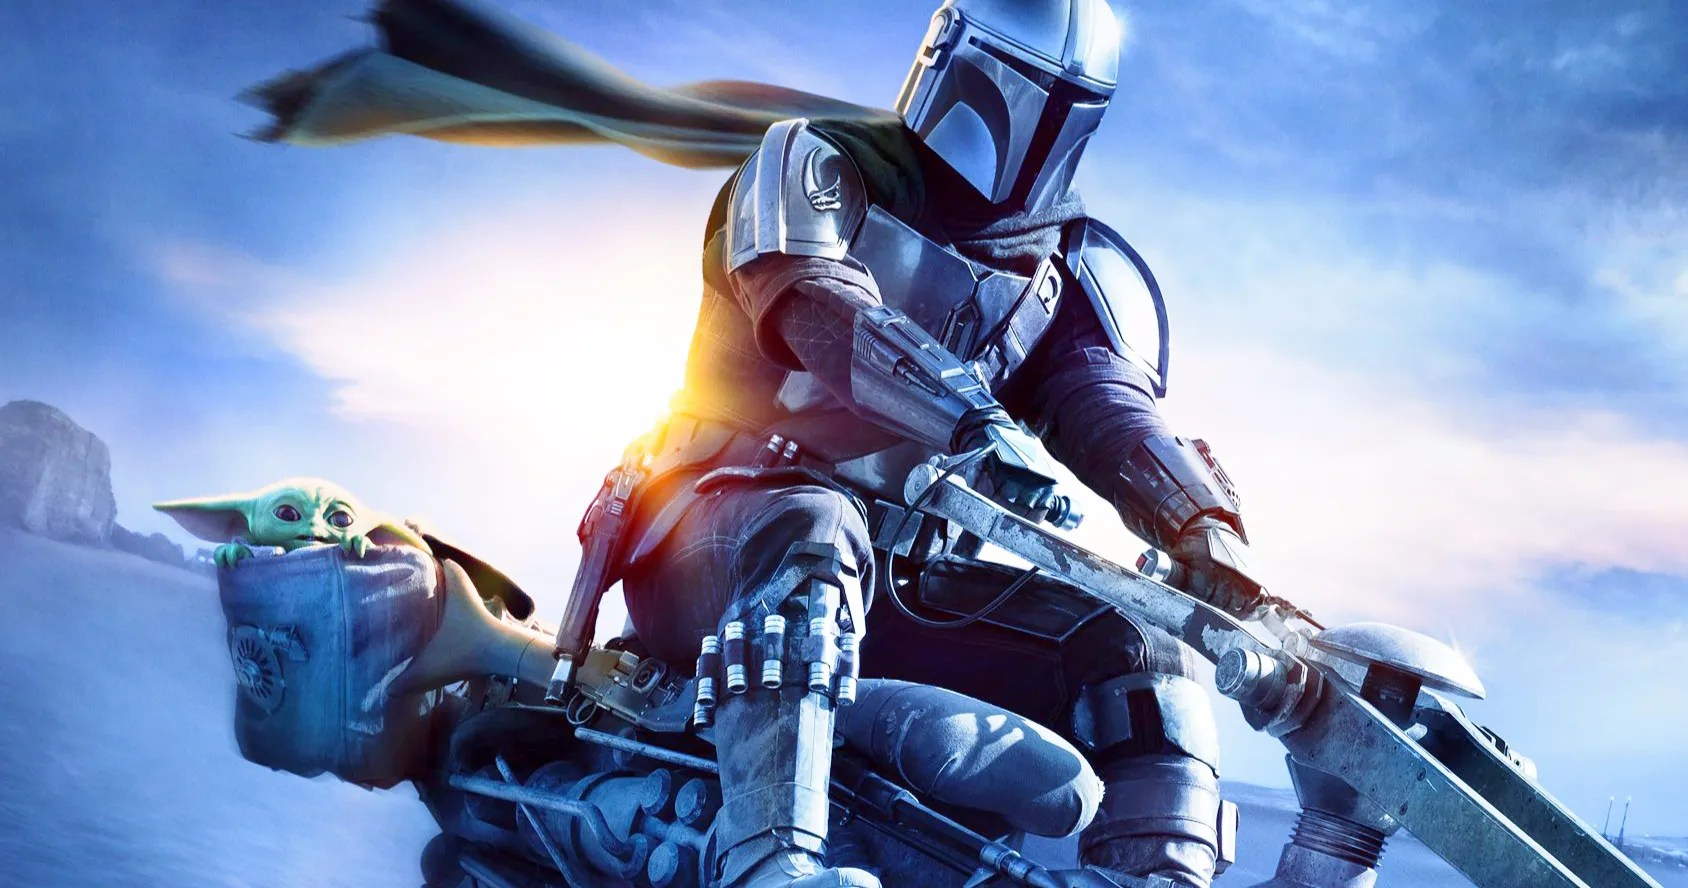 New The Mandalorian Season 2 Poster Speeds In With Mando Baby Yoda Lenexweb